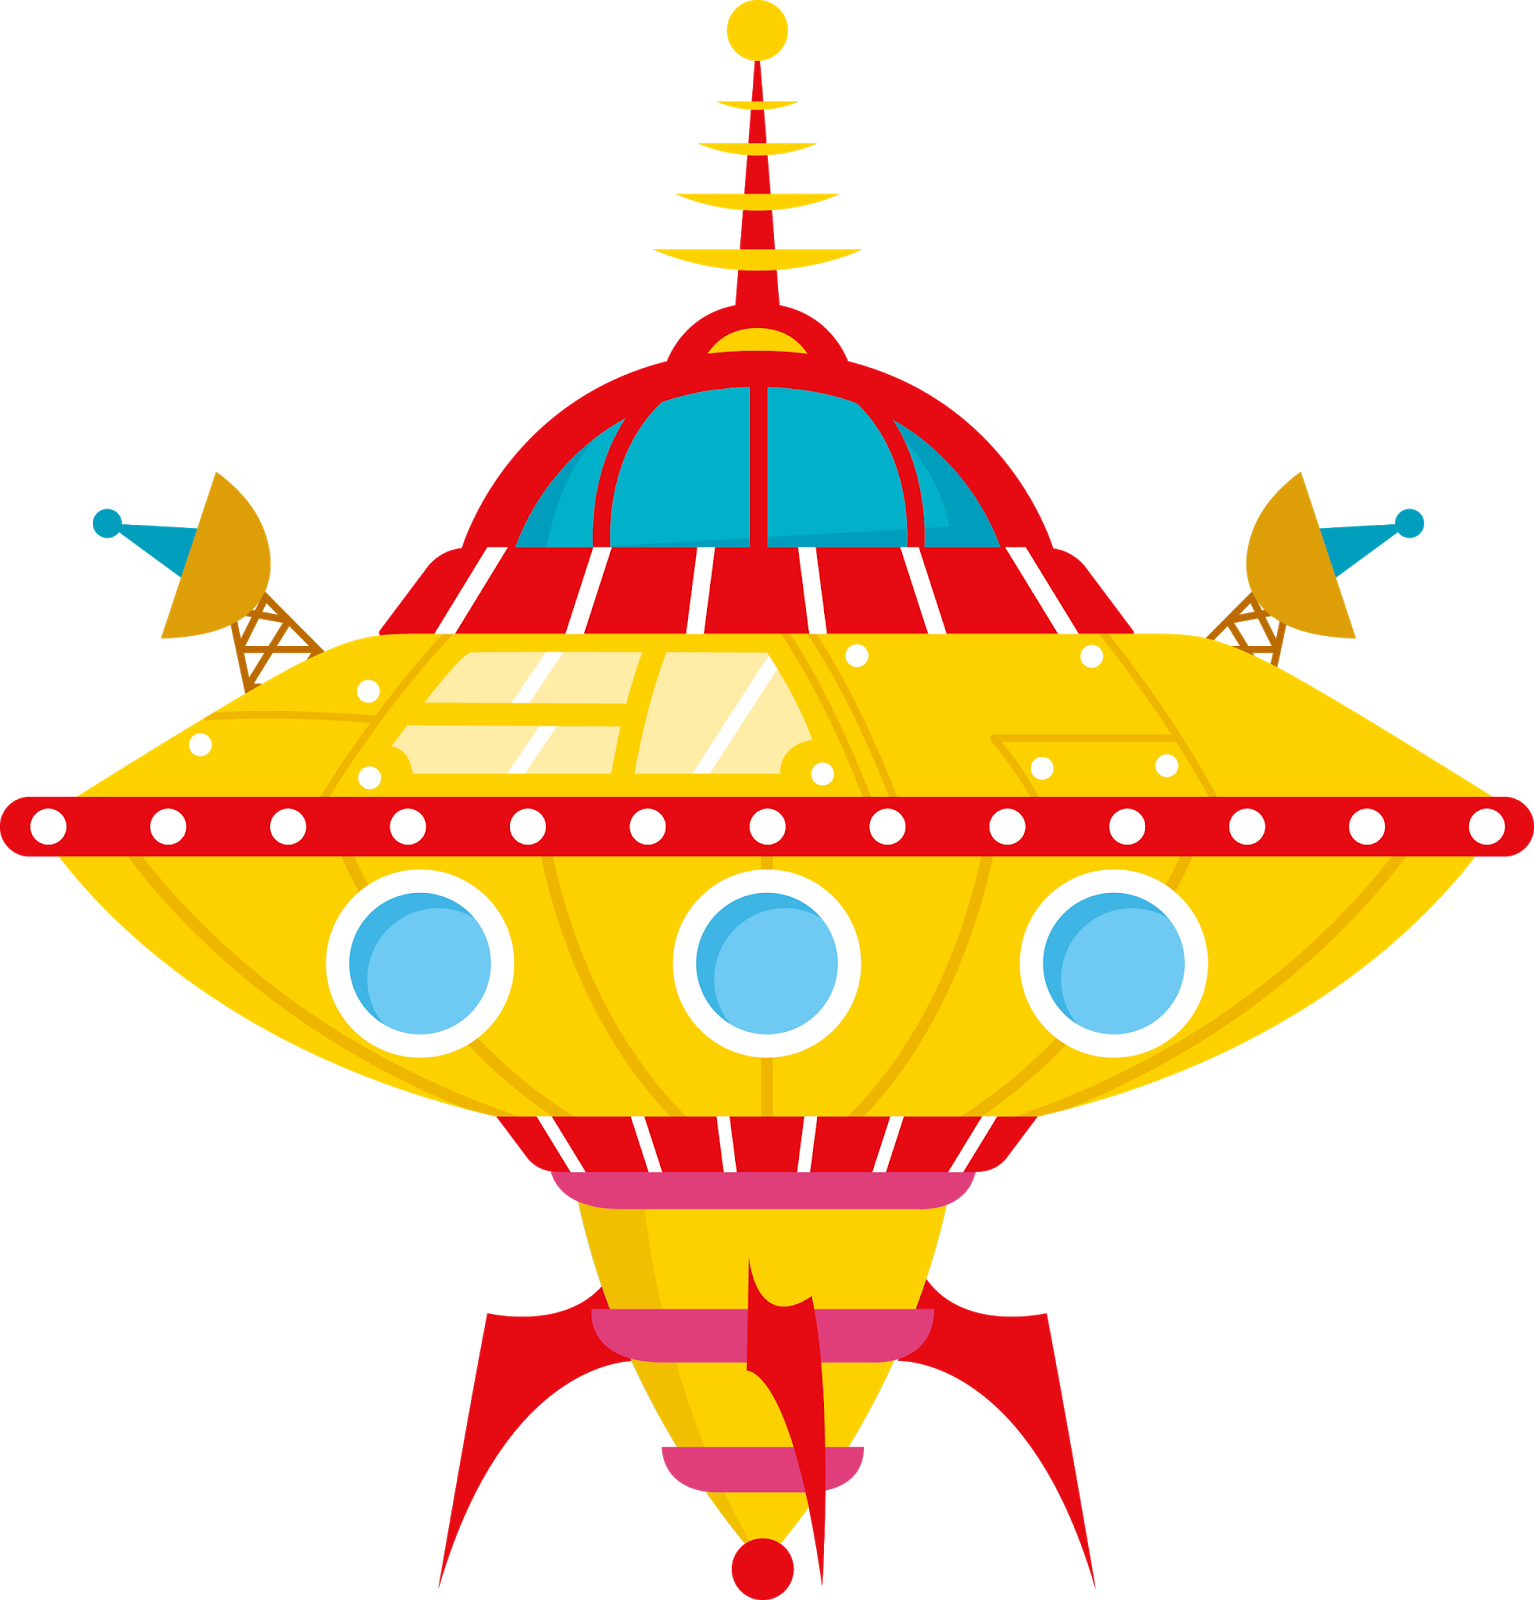 Aliens astronauts and spaceships. Spaceship clipart enemy